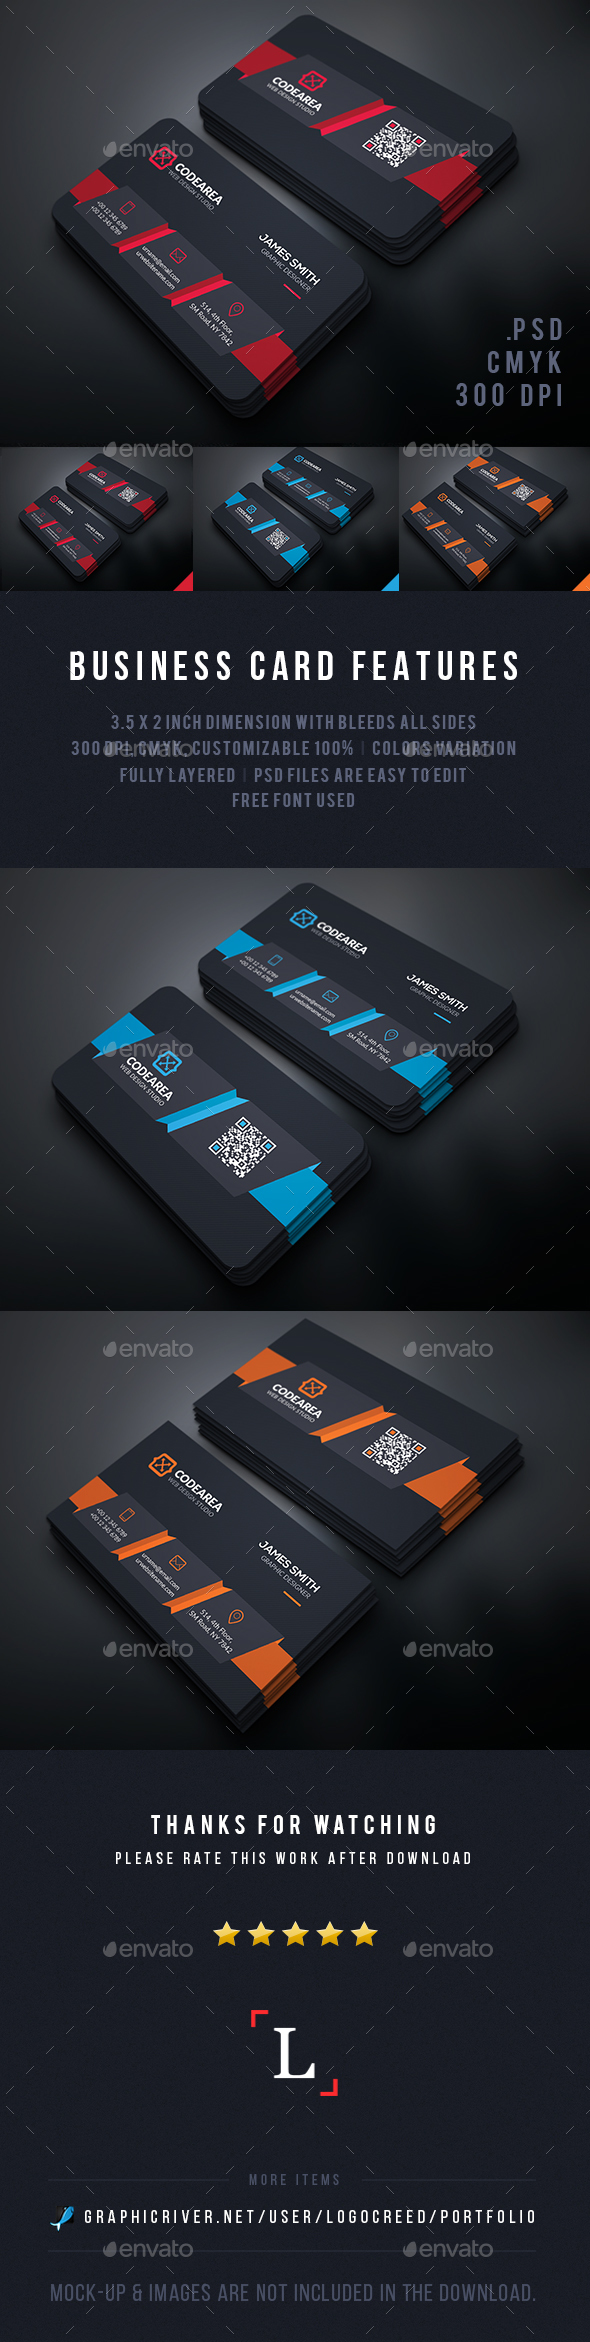 Design Business Card - Business Cards Print Templates